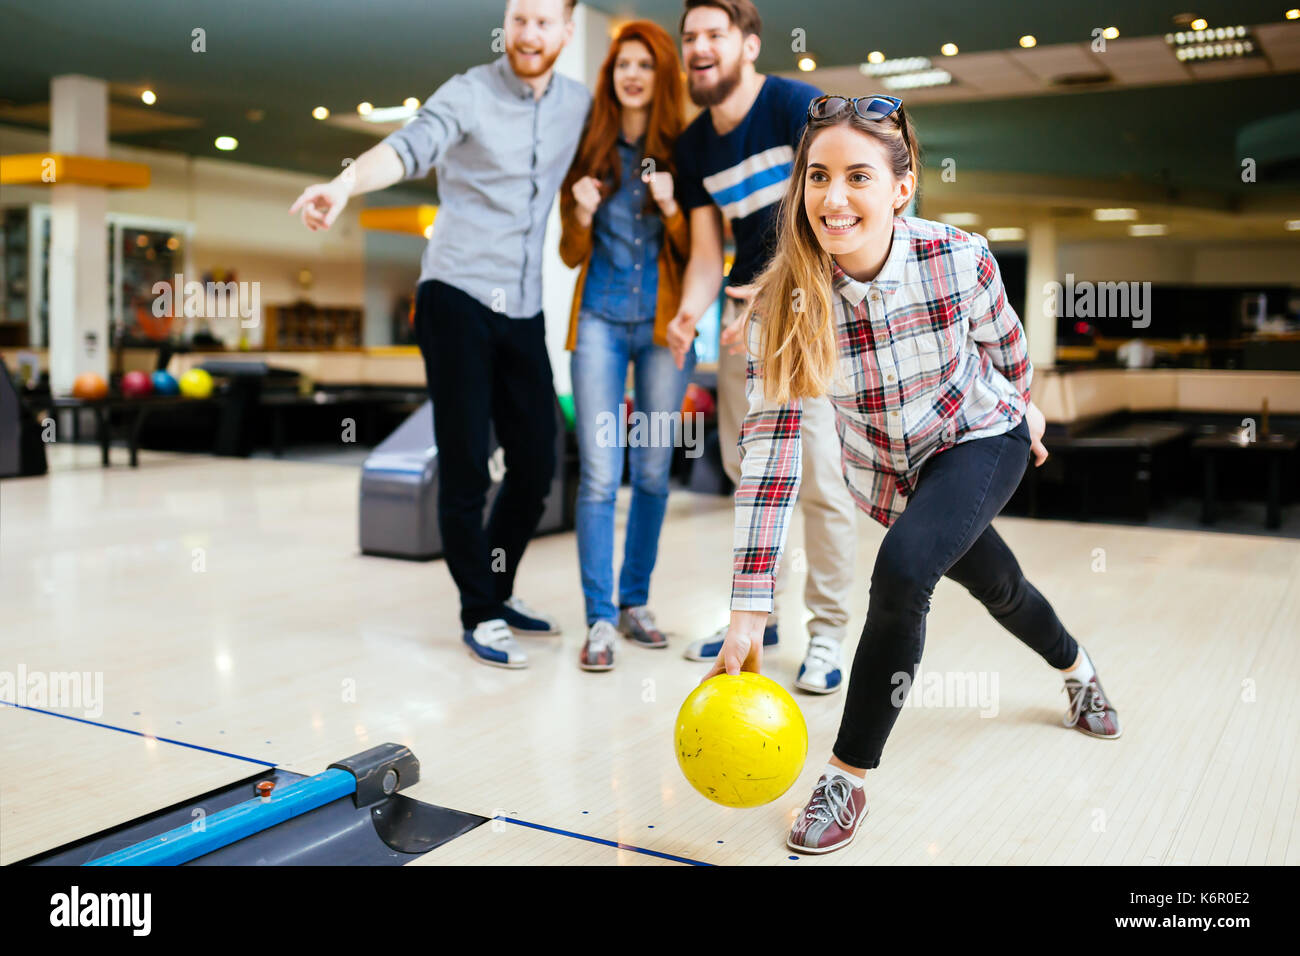 People Bowling Stock Photos & People Bowling Stock Images